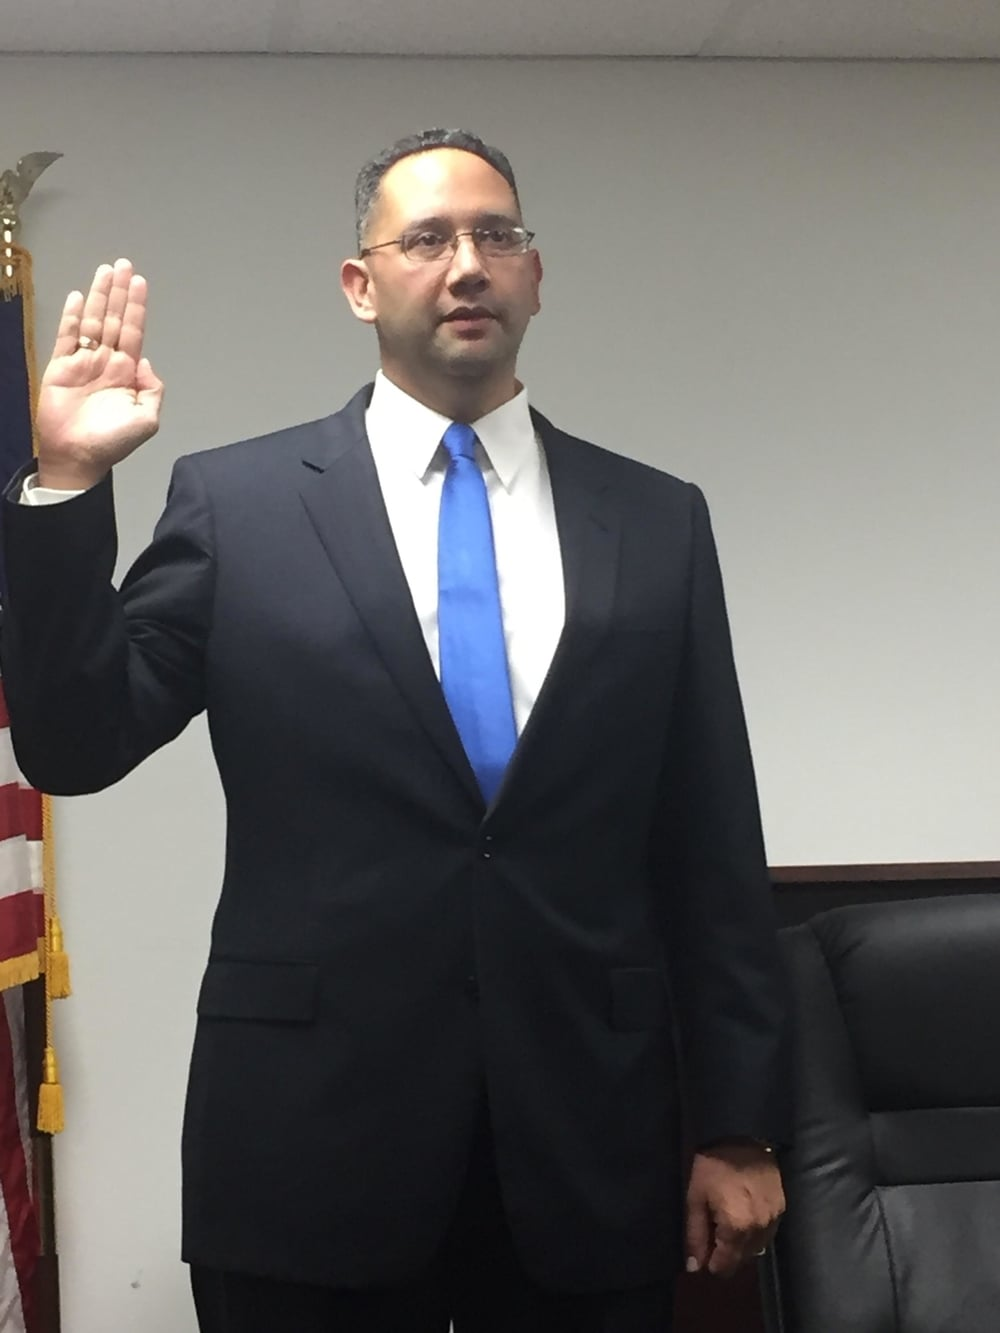 Cuevas being sworn in.jpg